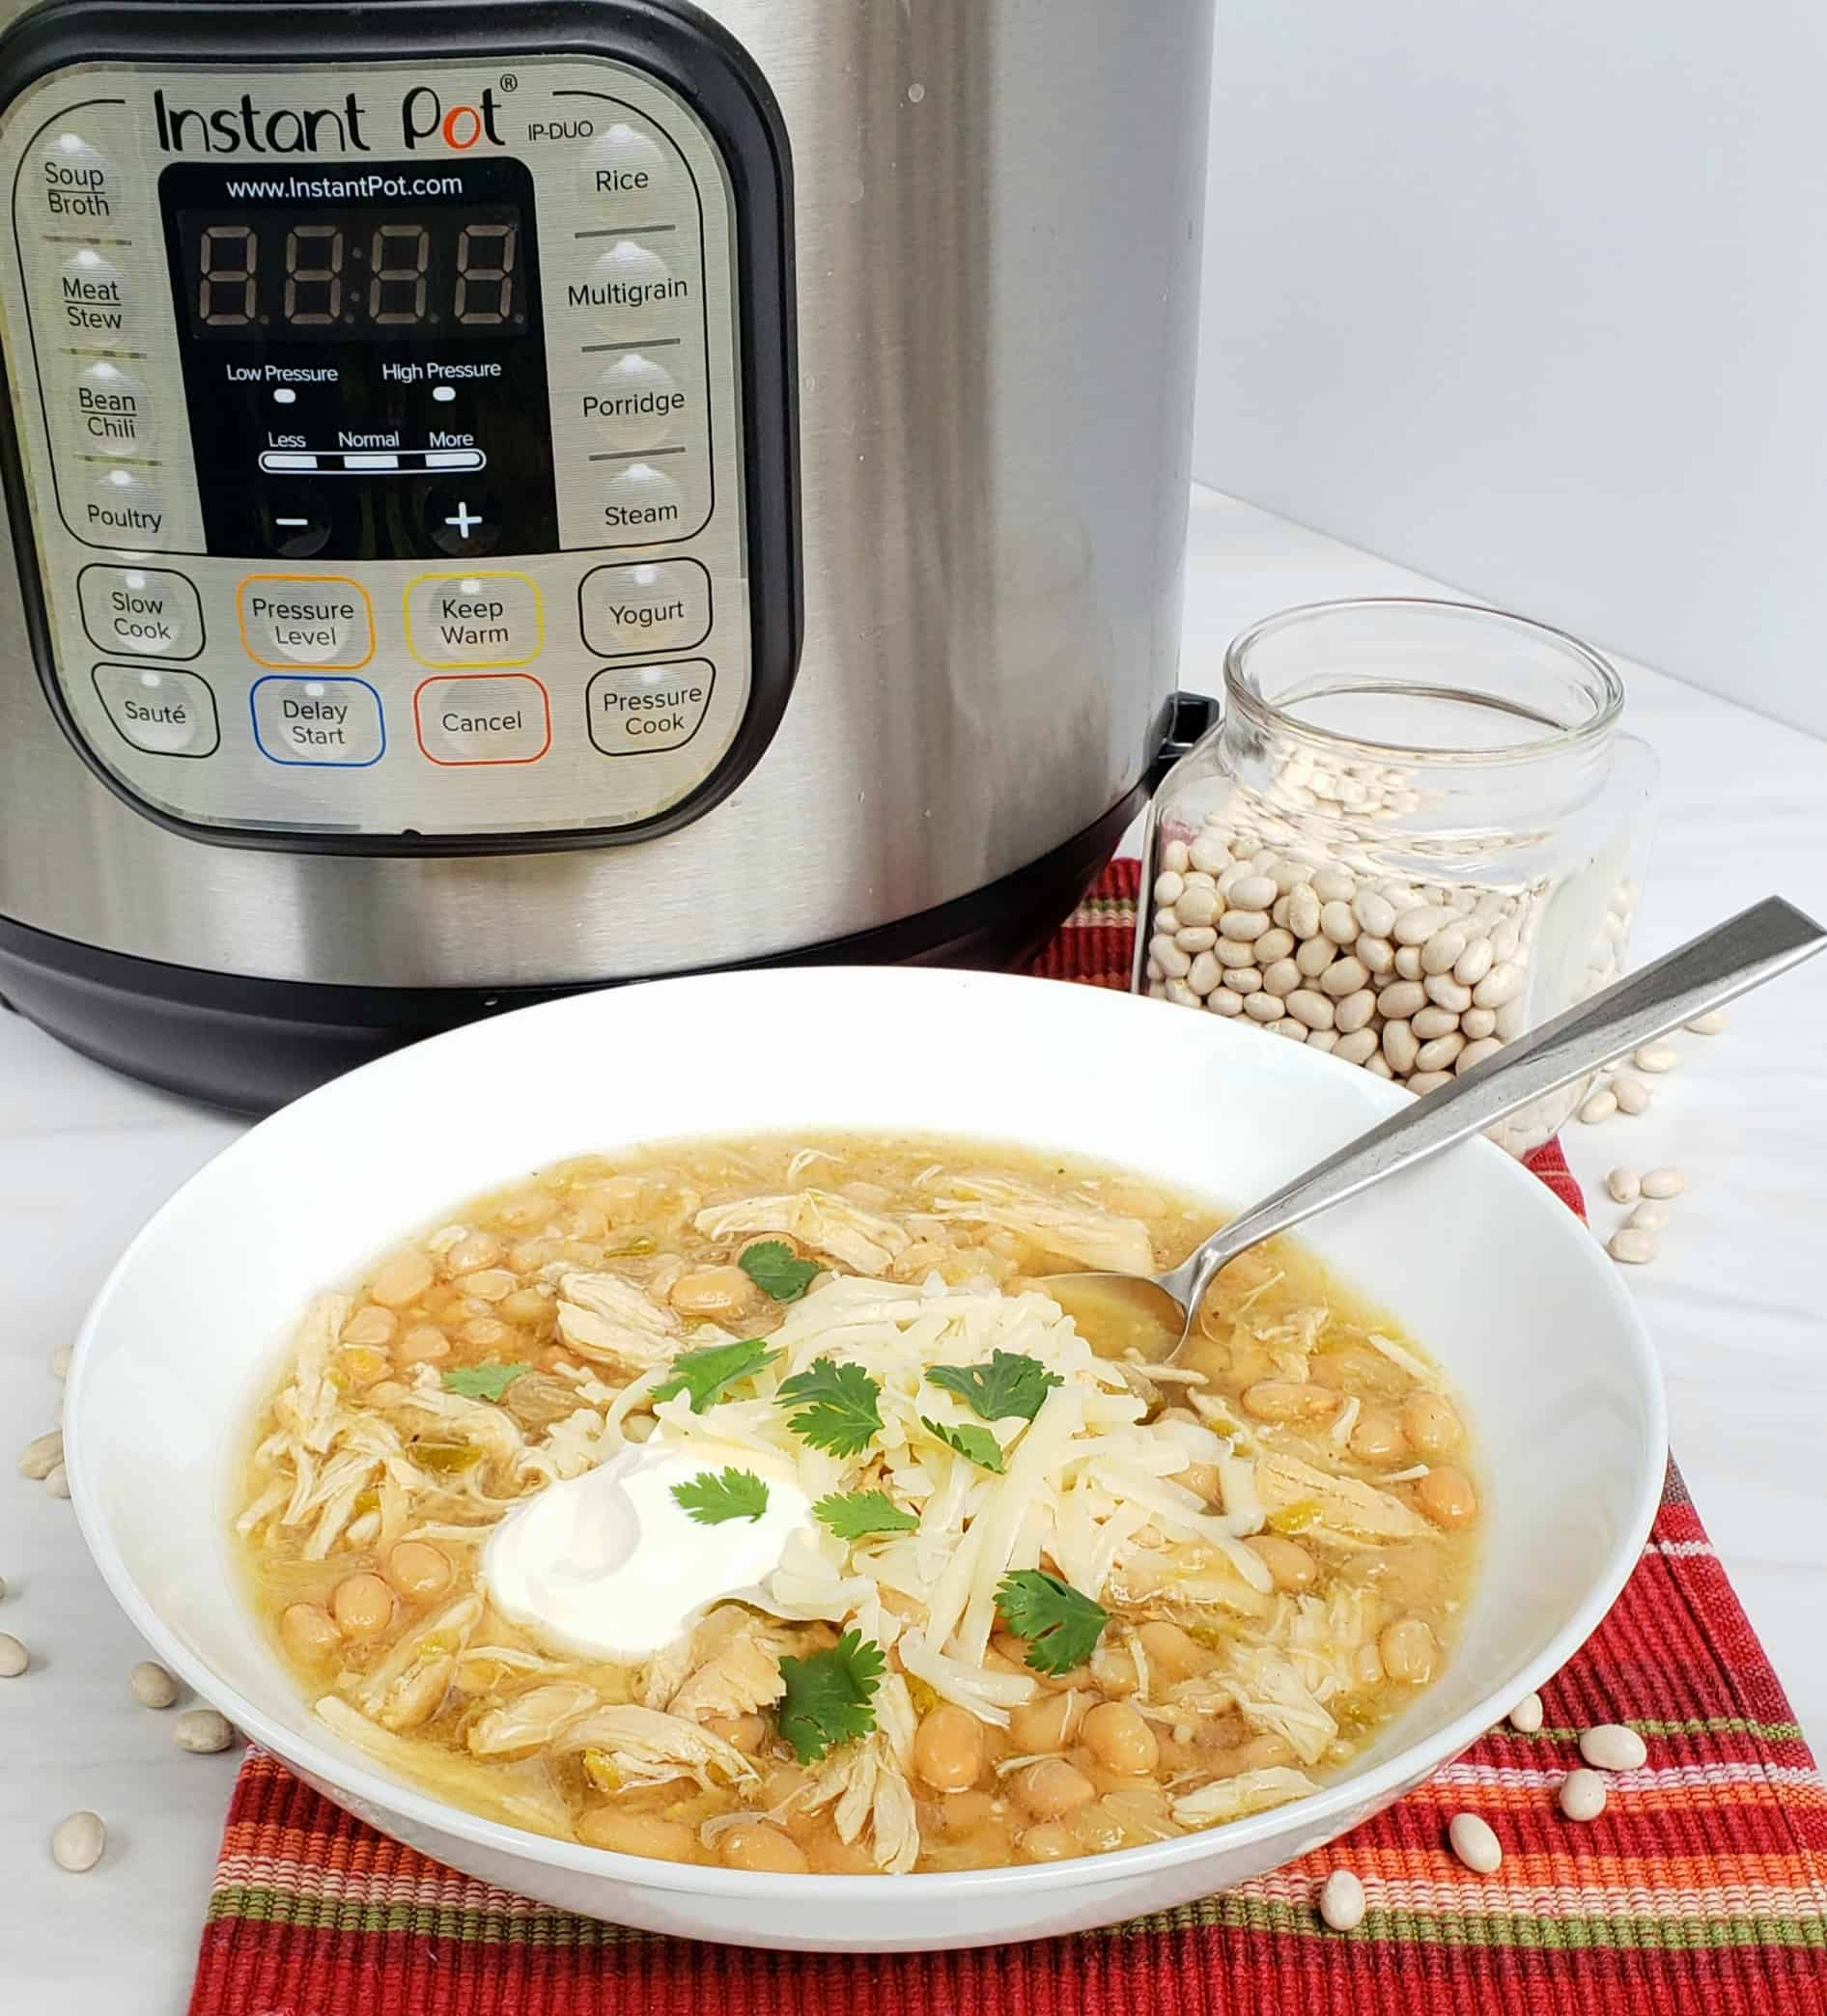 White Bean and Chicken Chili with Instant Pot in background